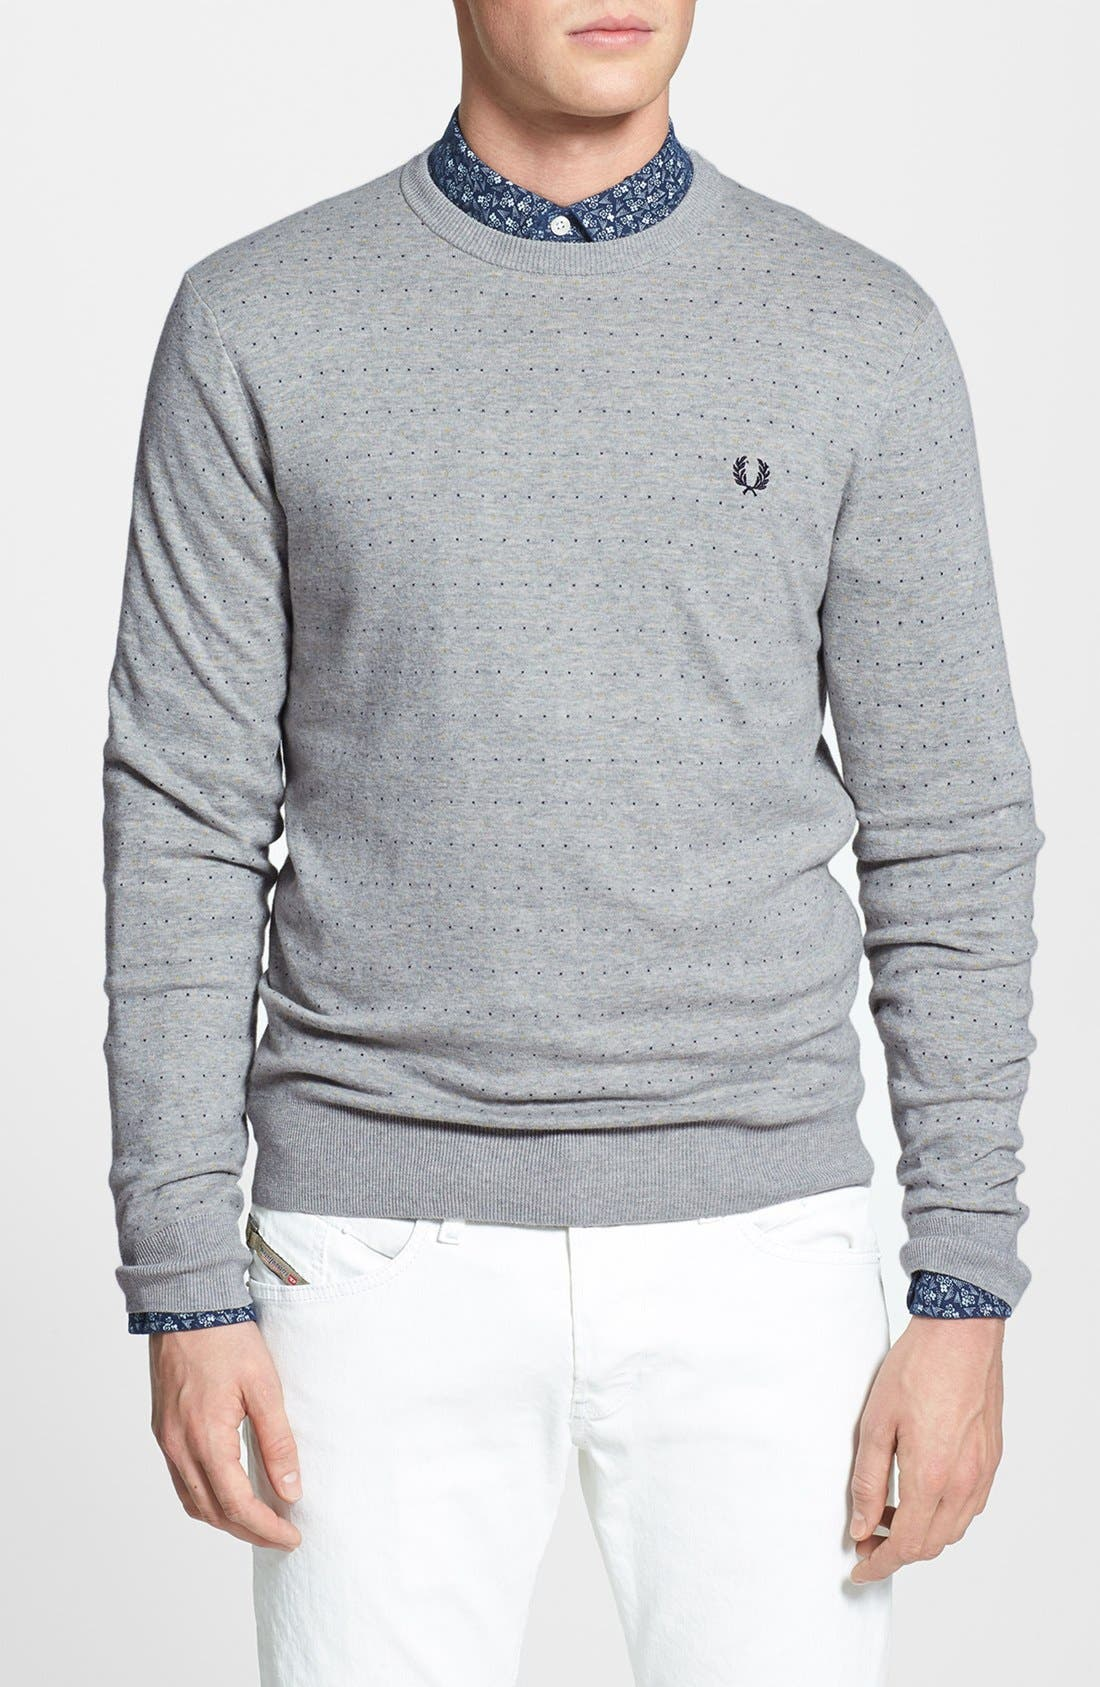 Alternate Image 1 Selected - Fred Perry 'Dot' Crewneck Sweater